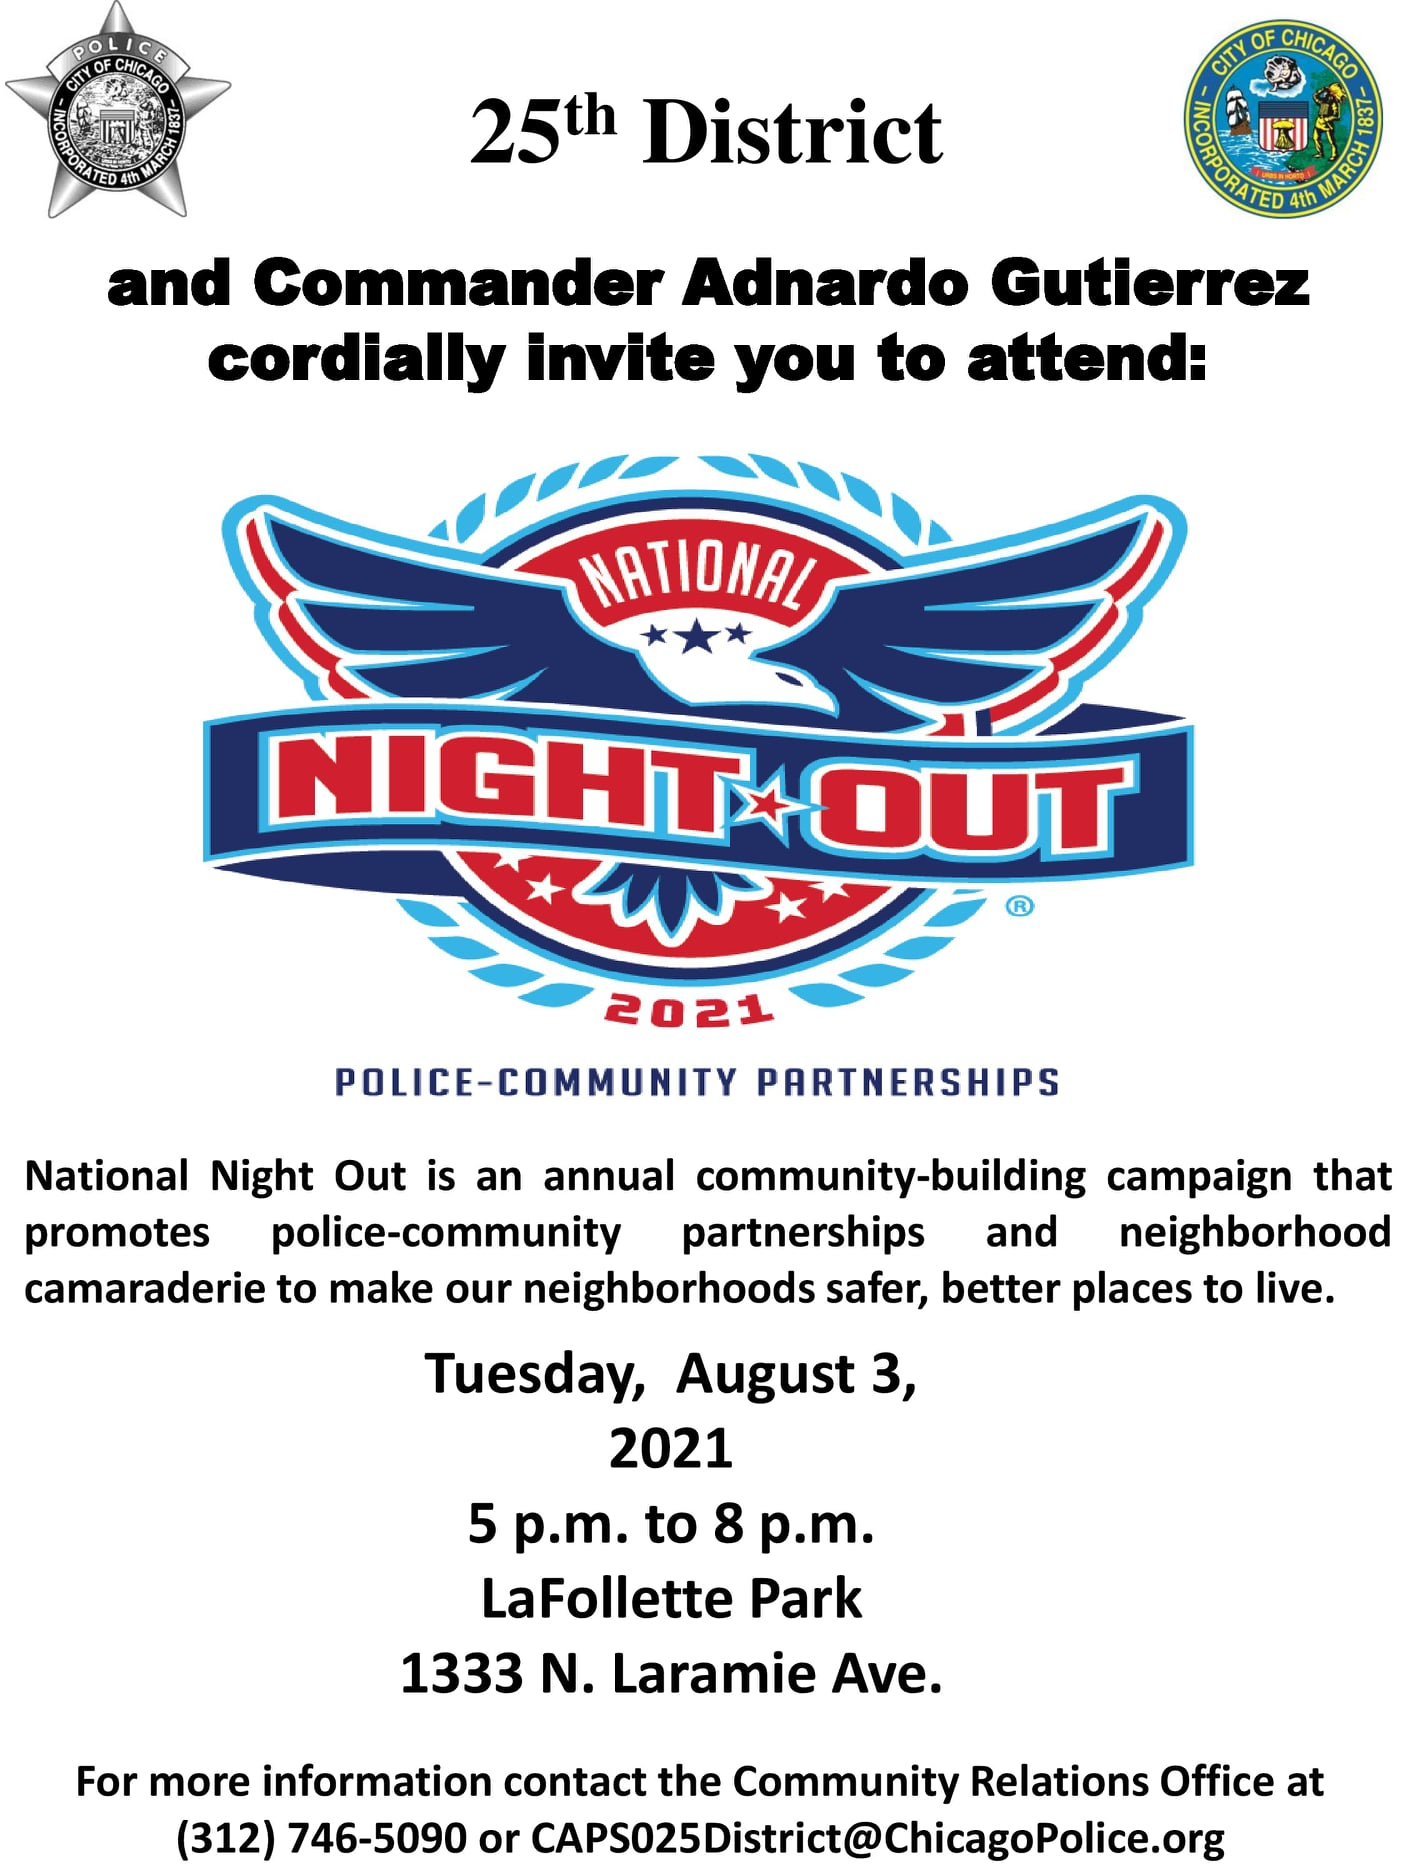 National Night Out - 25th DIstrict